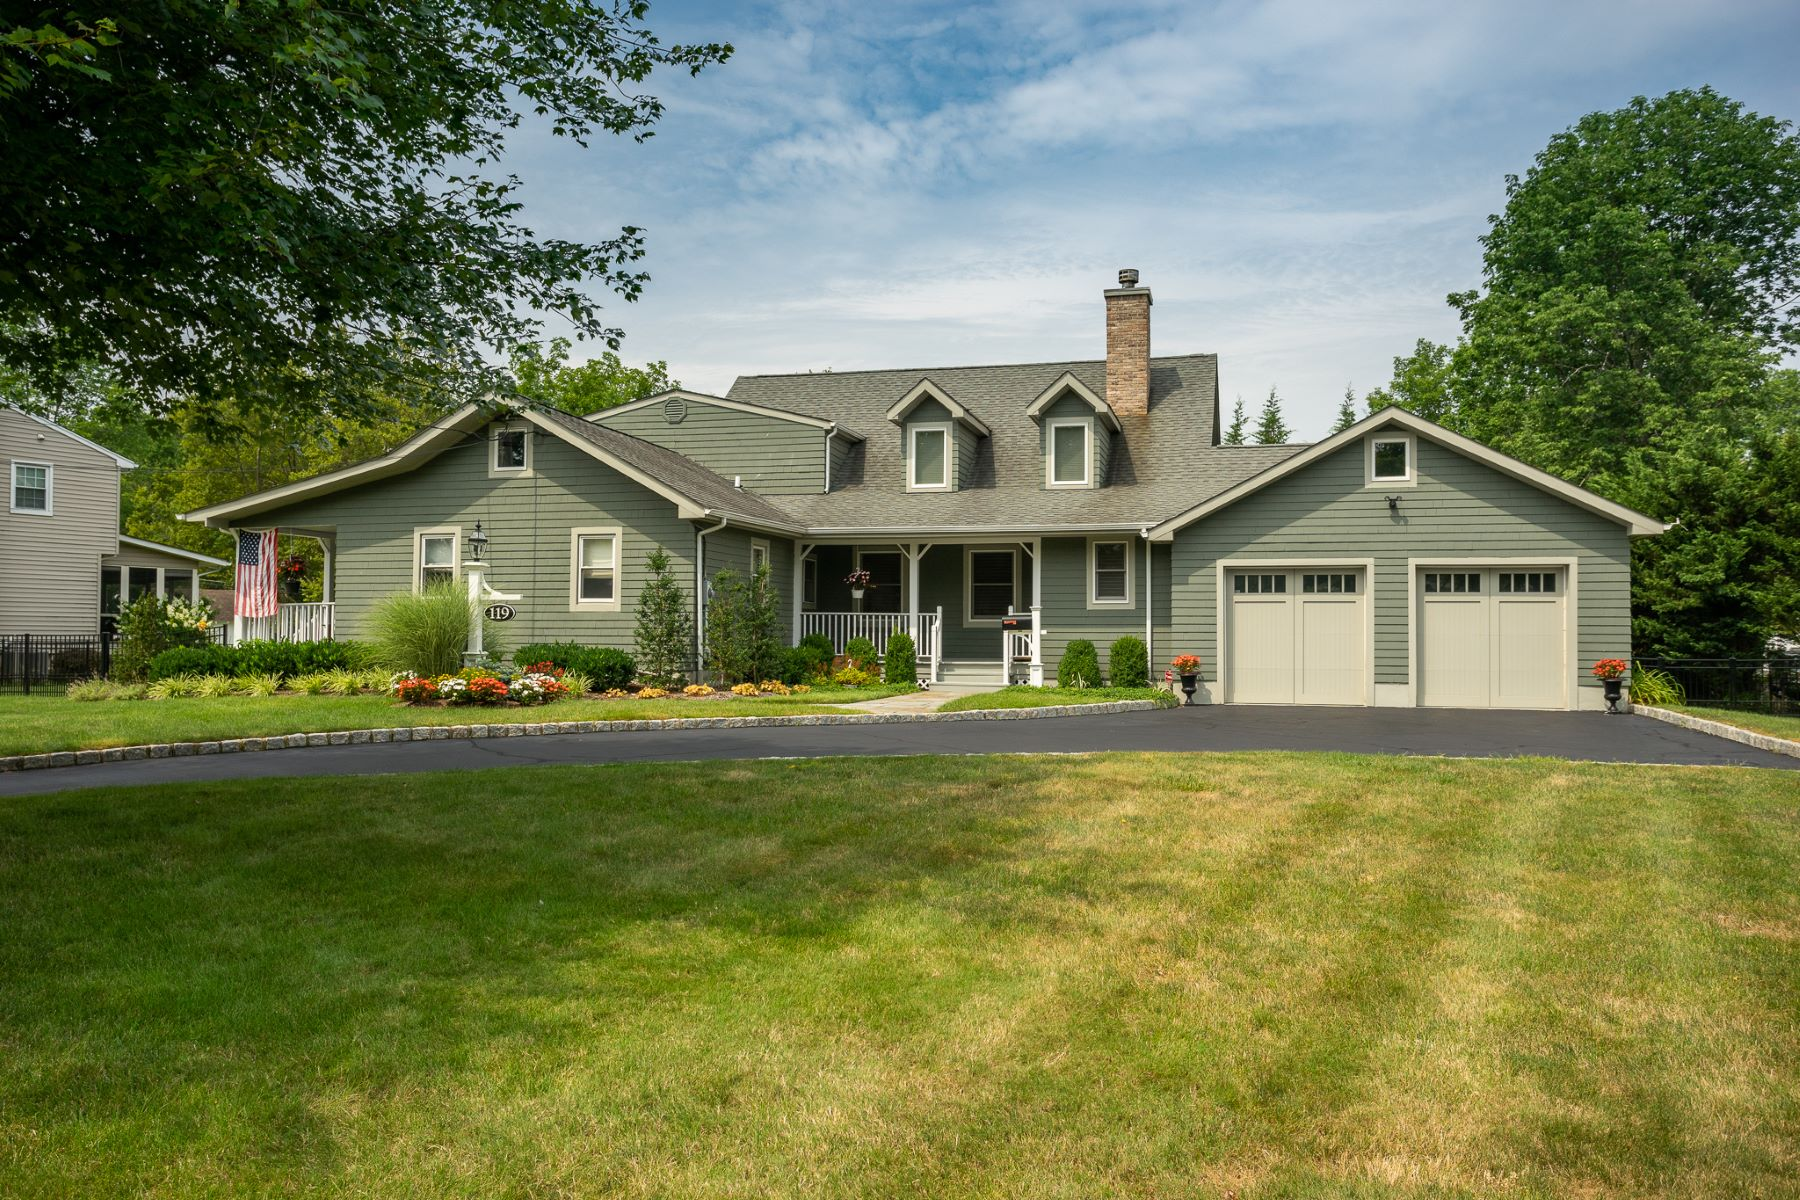 Single Family Homes for Sale at Turn Key Custom Home 119 Crescent Road, Florham Park, New Jersey 07932 United States